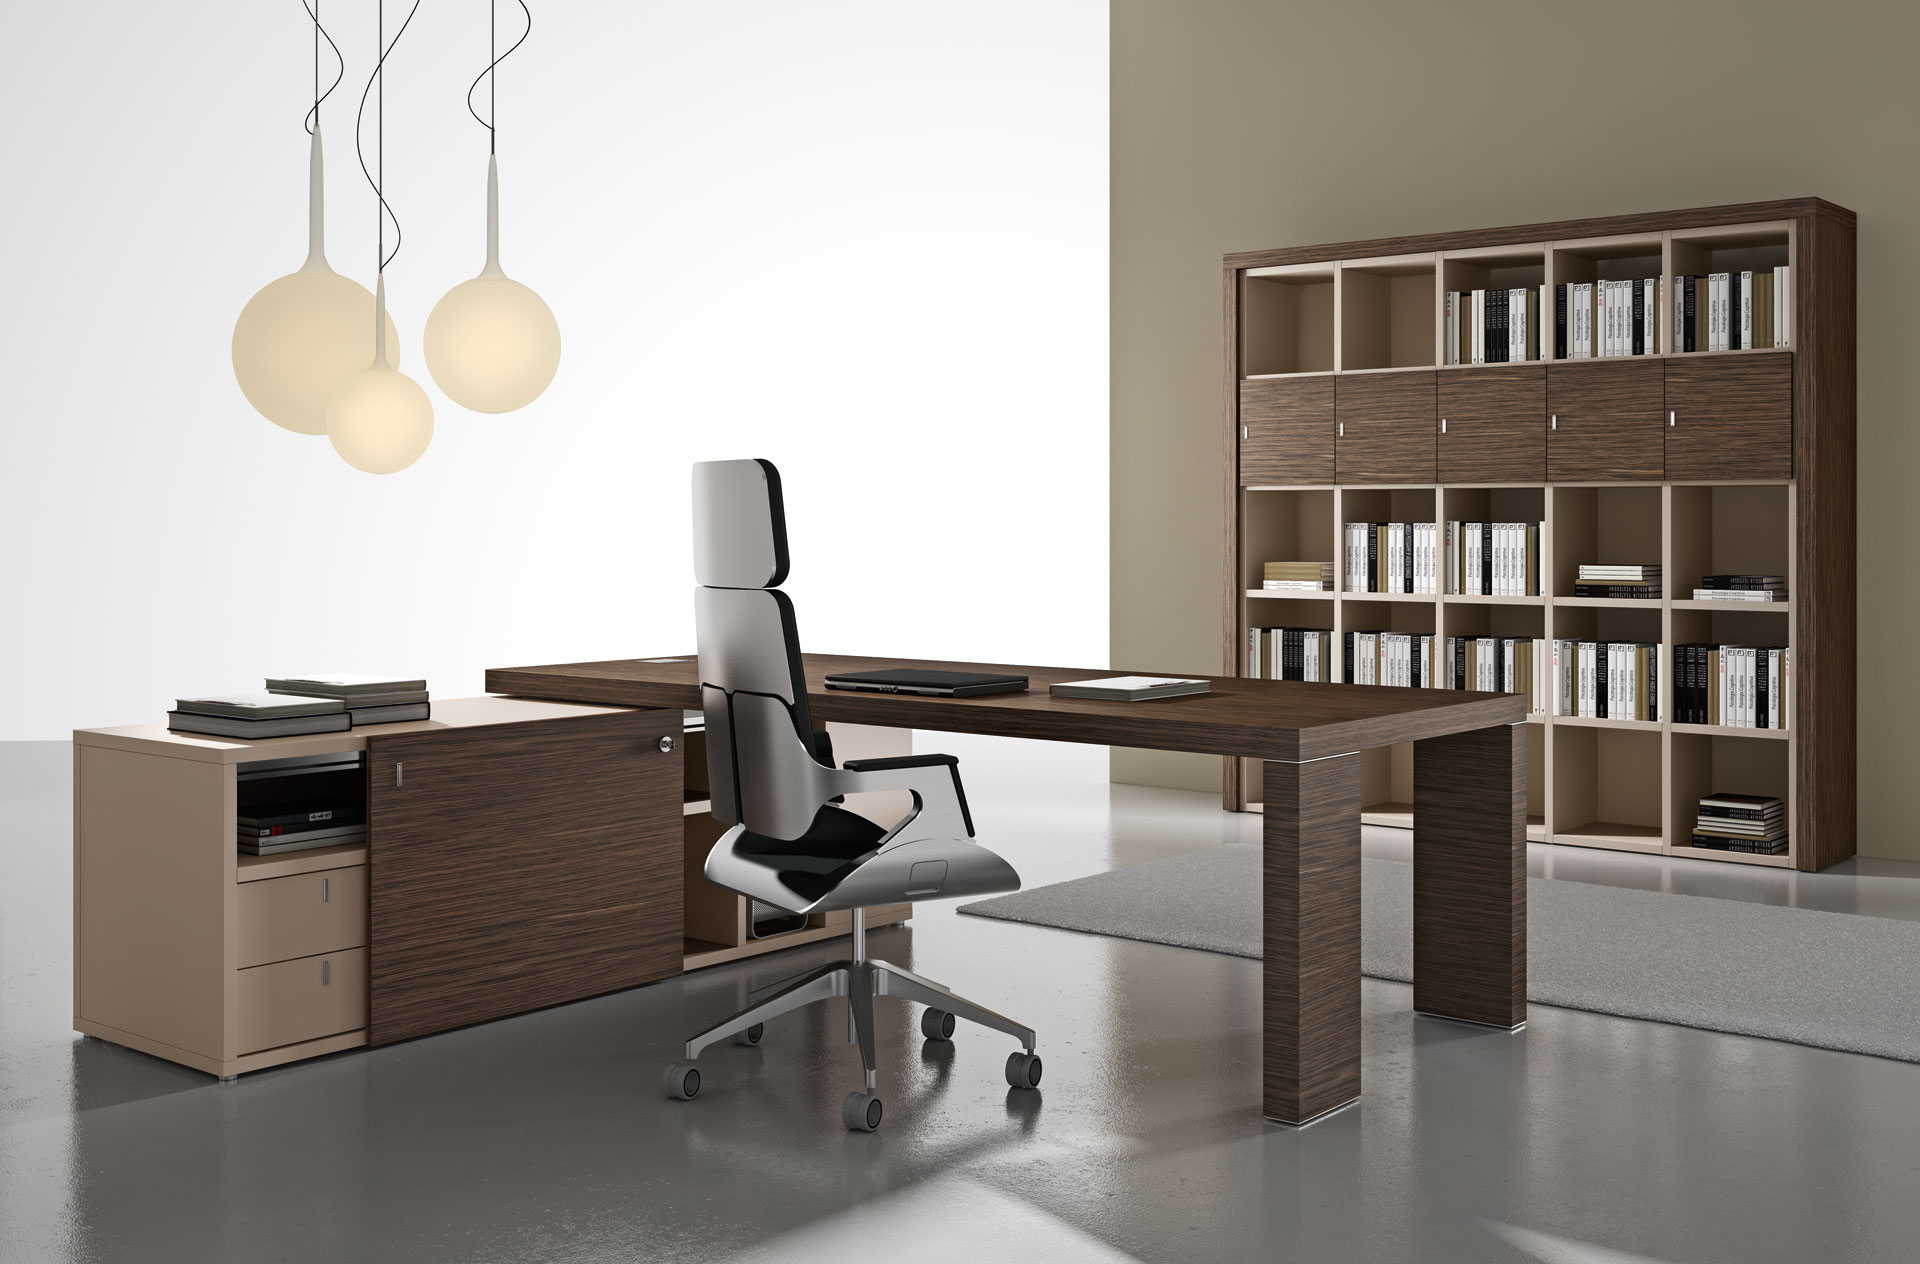 Alea office casa italia for Mobili per ufficio e design